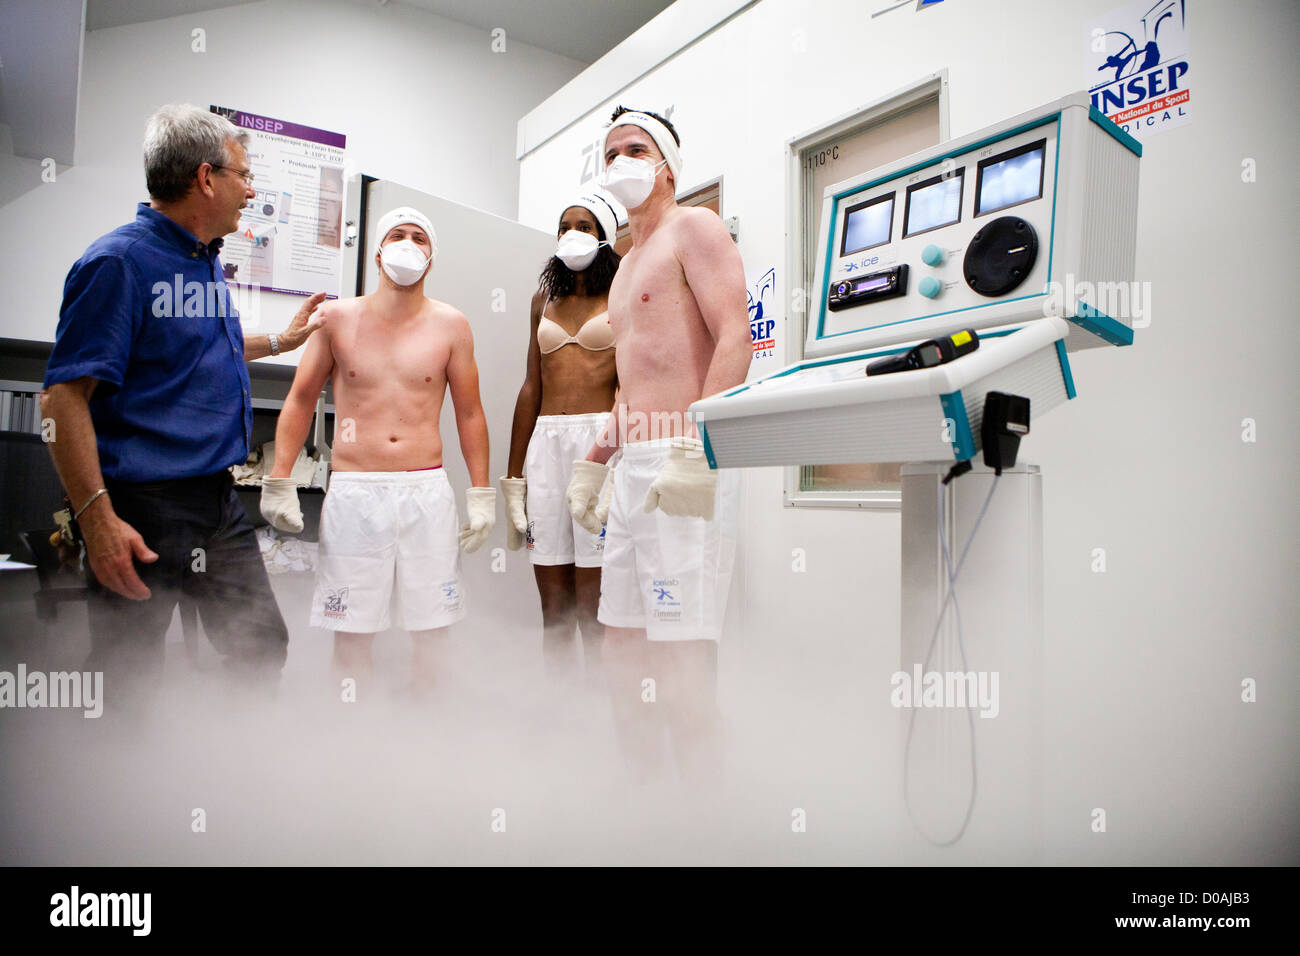 WHOLE BODY CRYOTHERAPY Stock Photo: 51865047 - Alamy